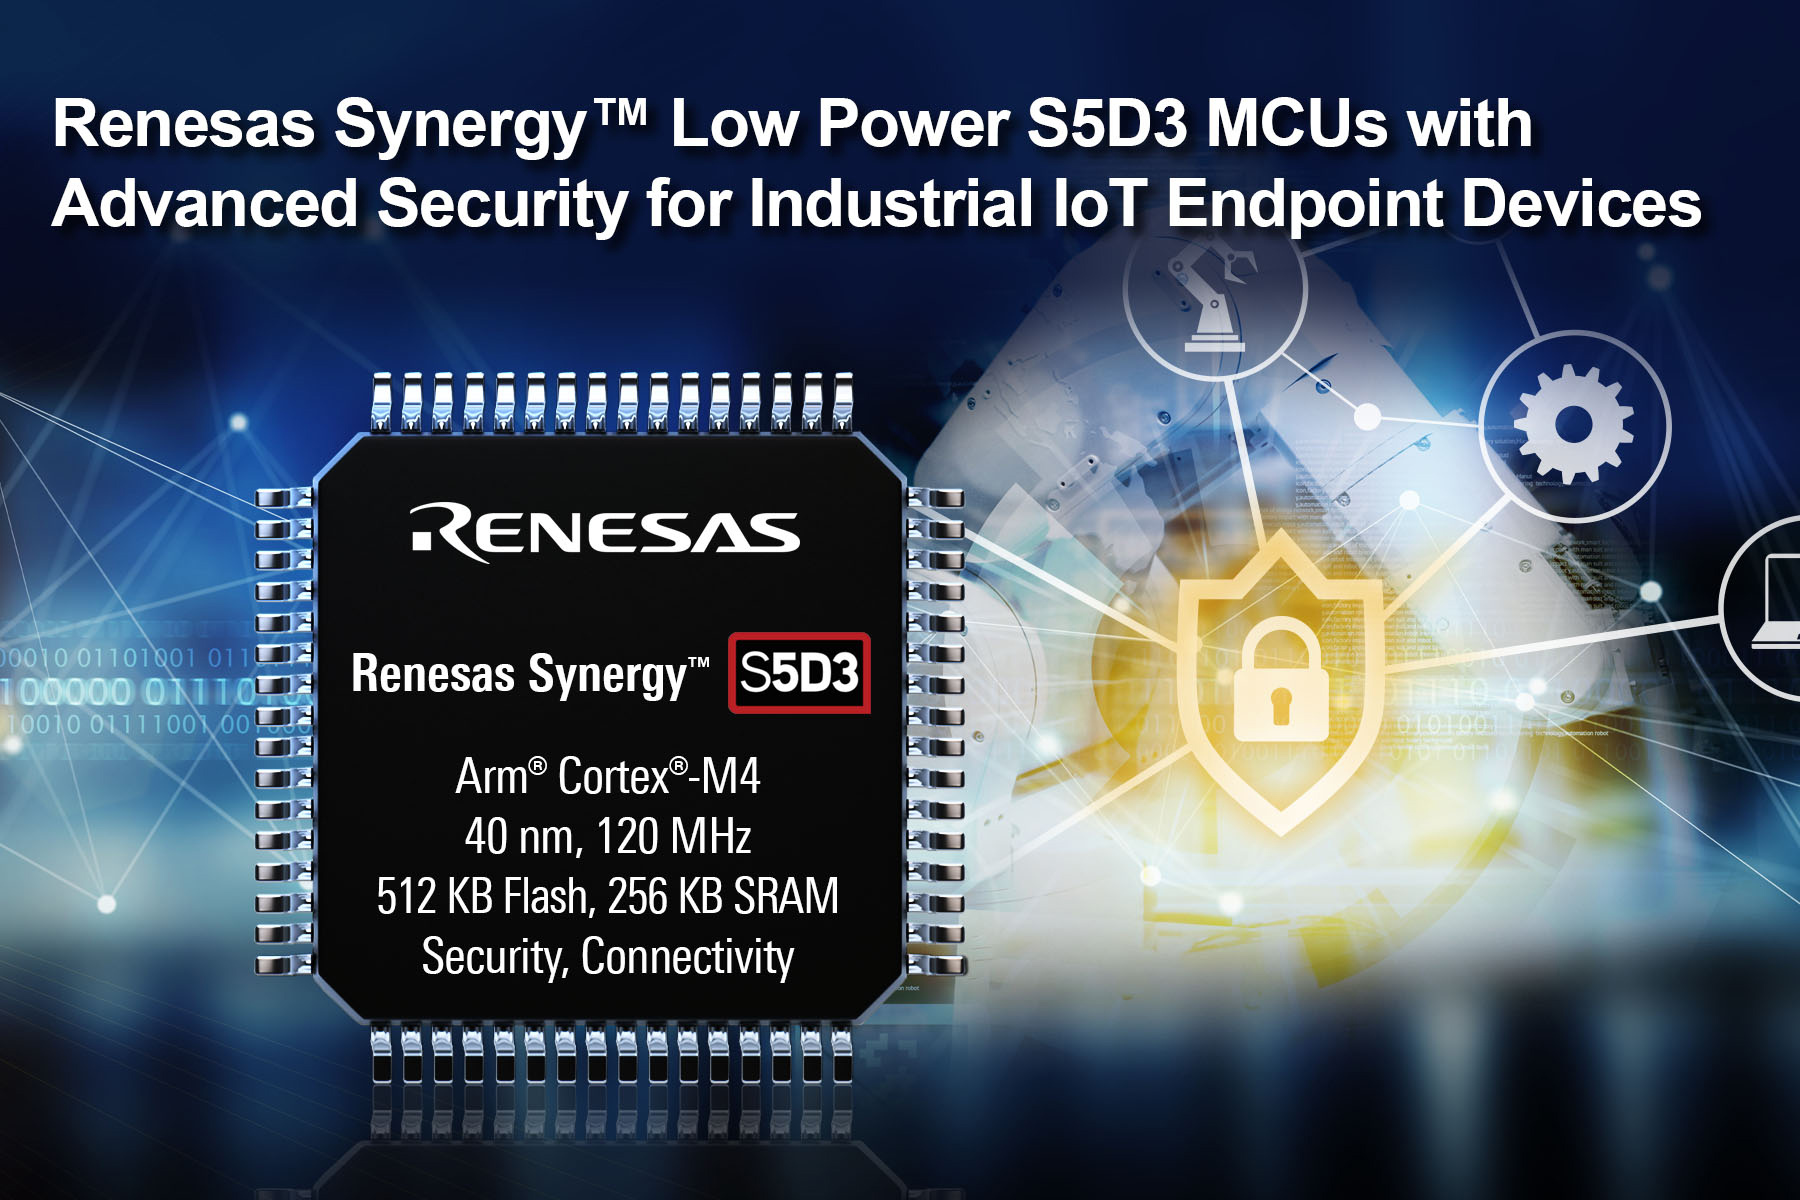 Renesas adds MCUs to Synergy series